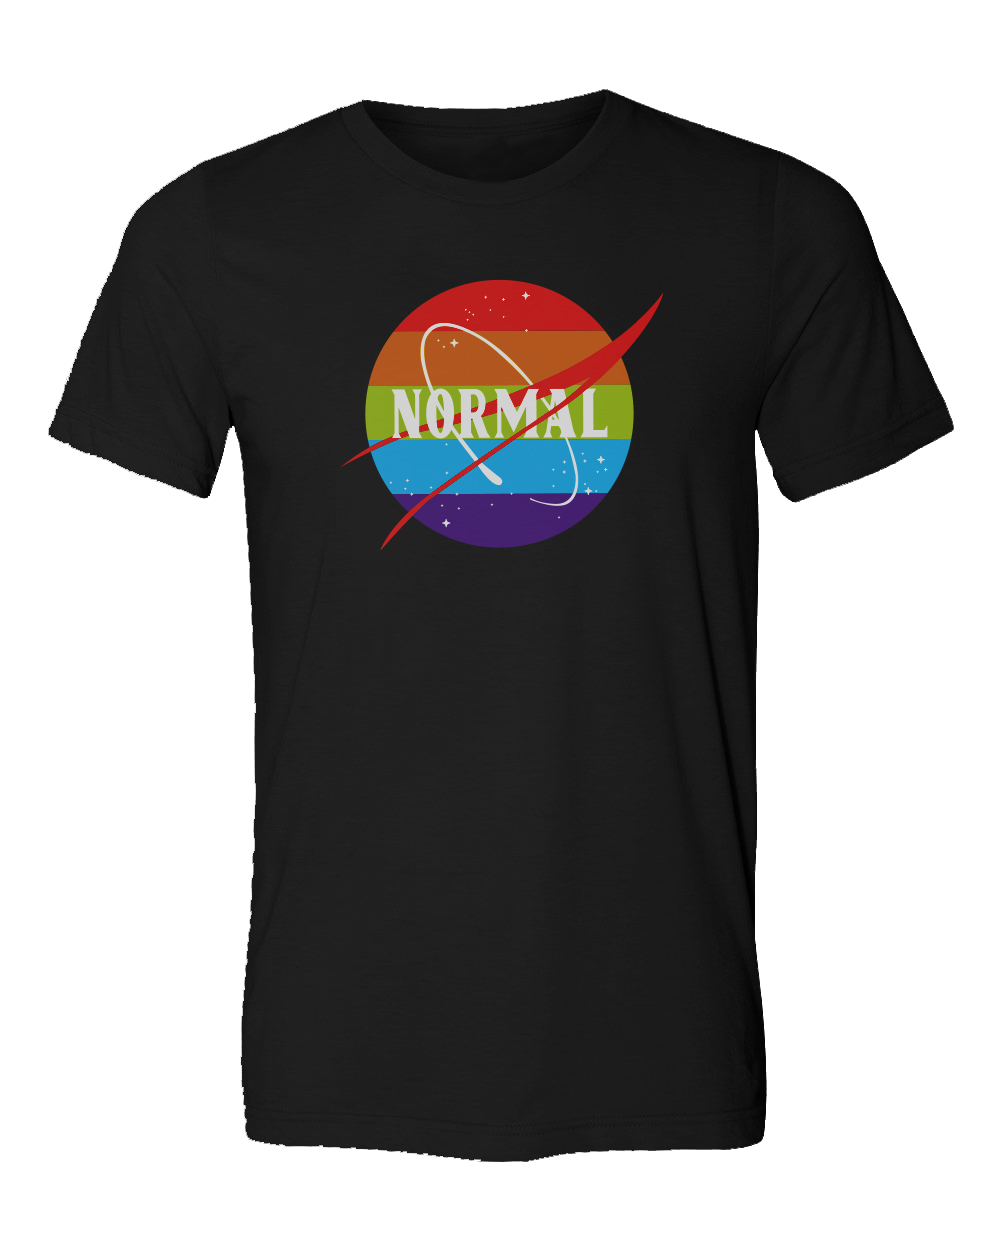 Unisex Men or Women Normal T-Shirt rainbow colors and stars. Design made in California, USA inspired by NASA, Pride, LGTBQ lesbian gay transsexual bisexual queer community. Normalize people. Trendy popular fashion and political.